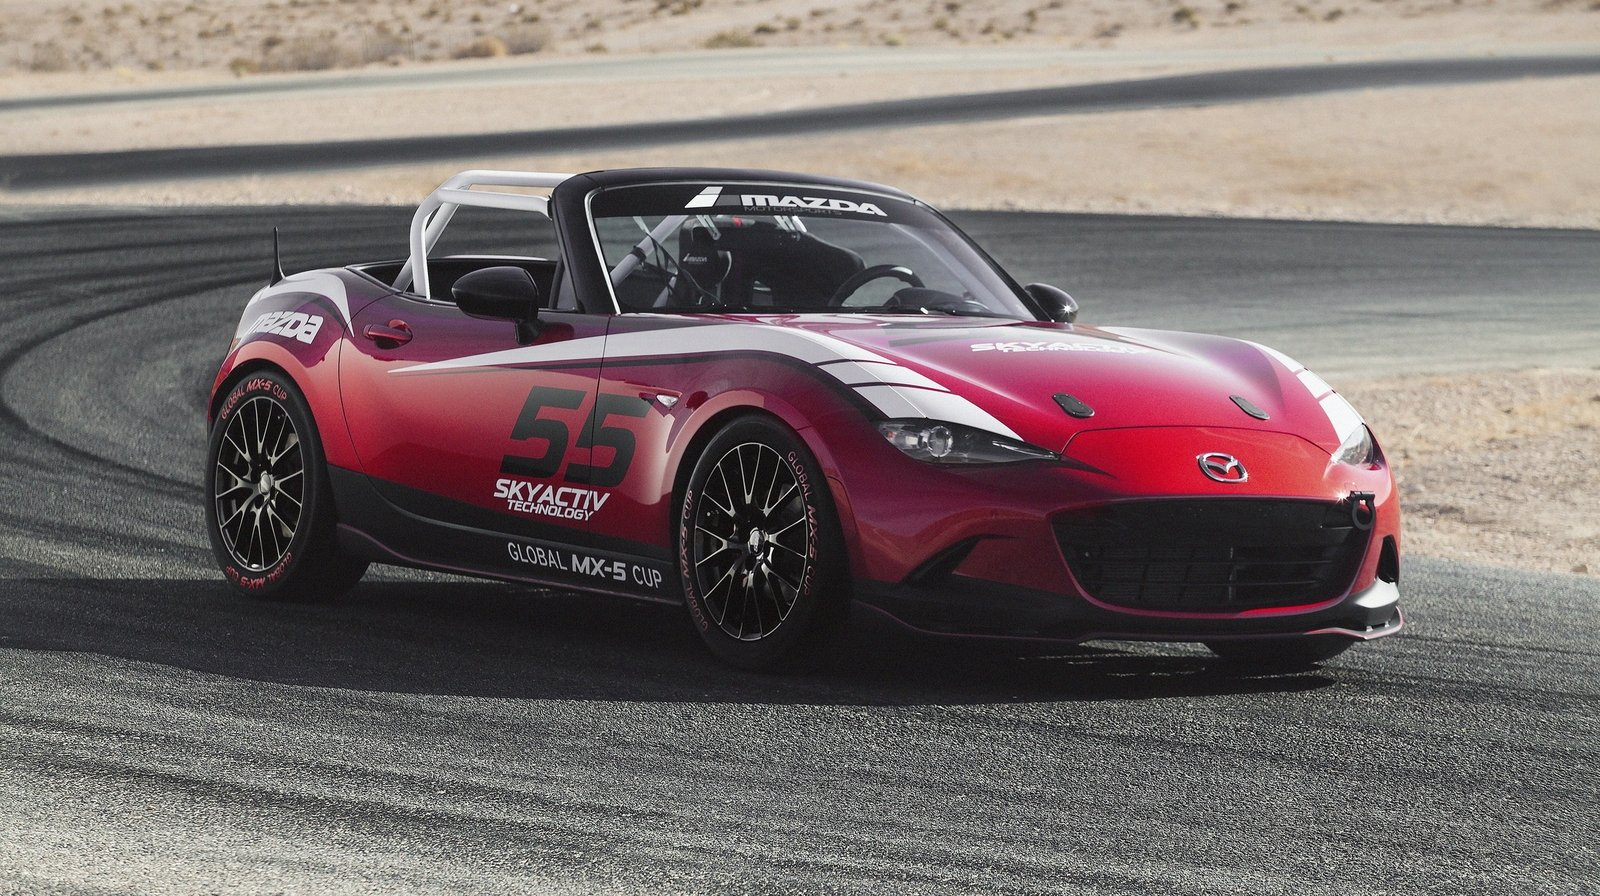 2015 mazda mx 5 cup racecar review top speed. Black Bedroom Furniture Sets. Home Design Ideas